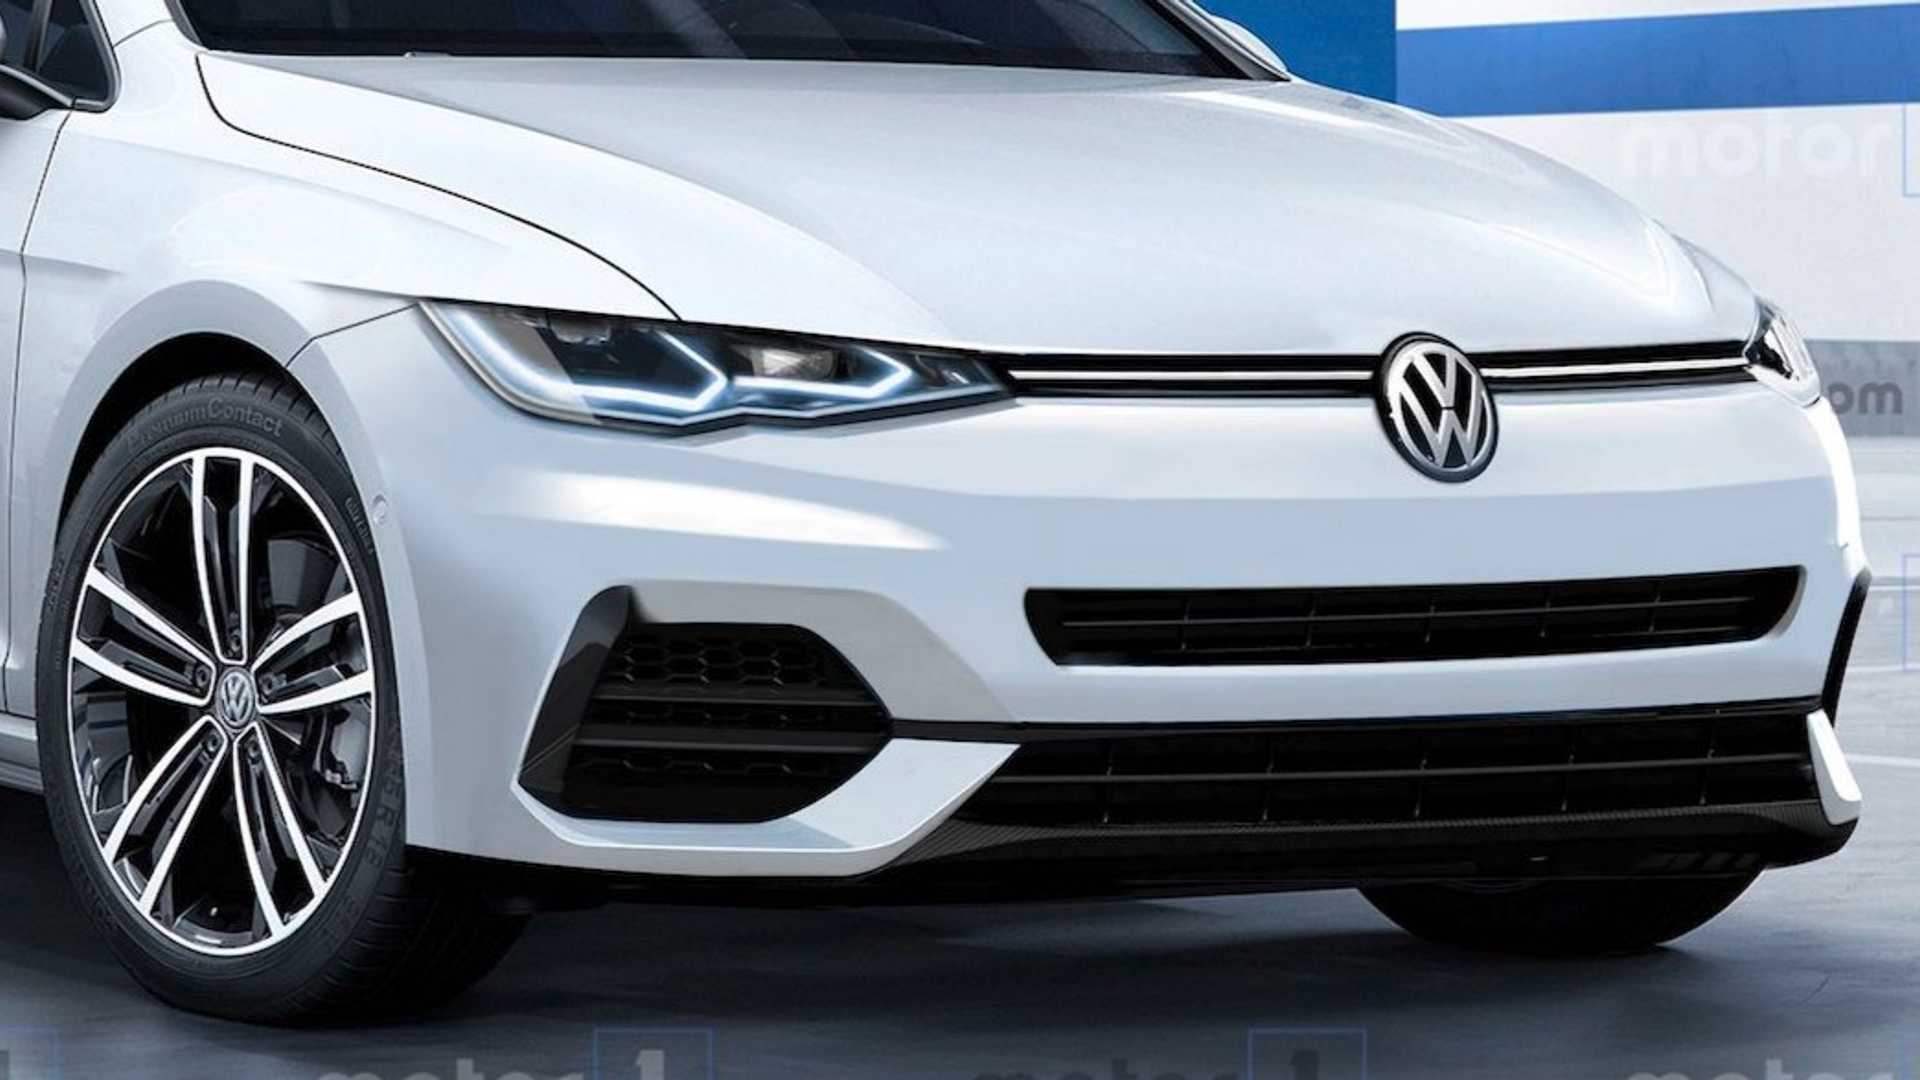 57 The 2020 VW Golf R USA Exterior And Interior